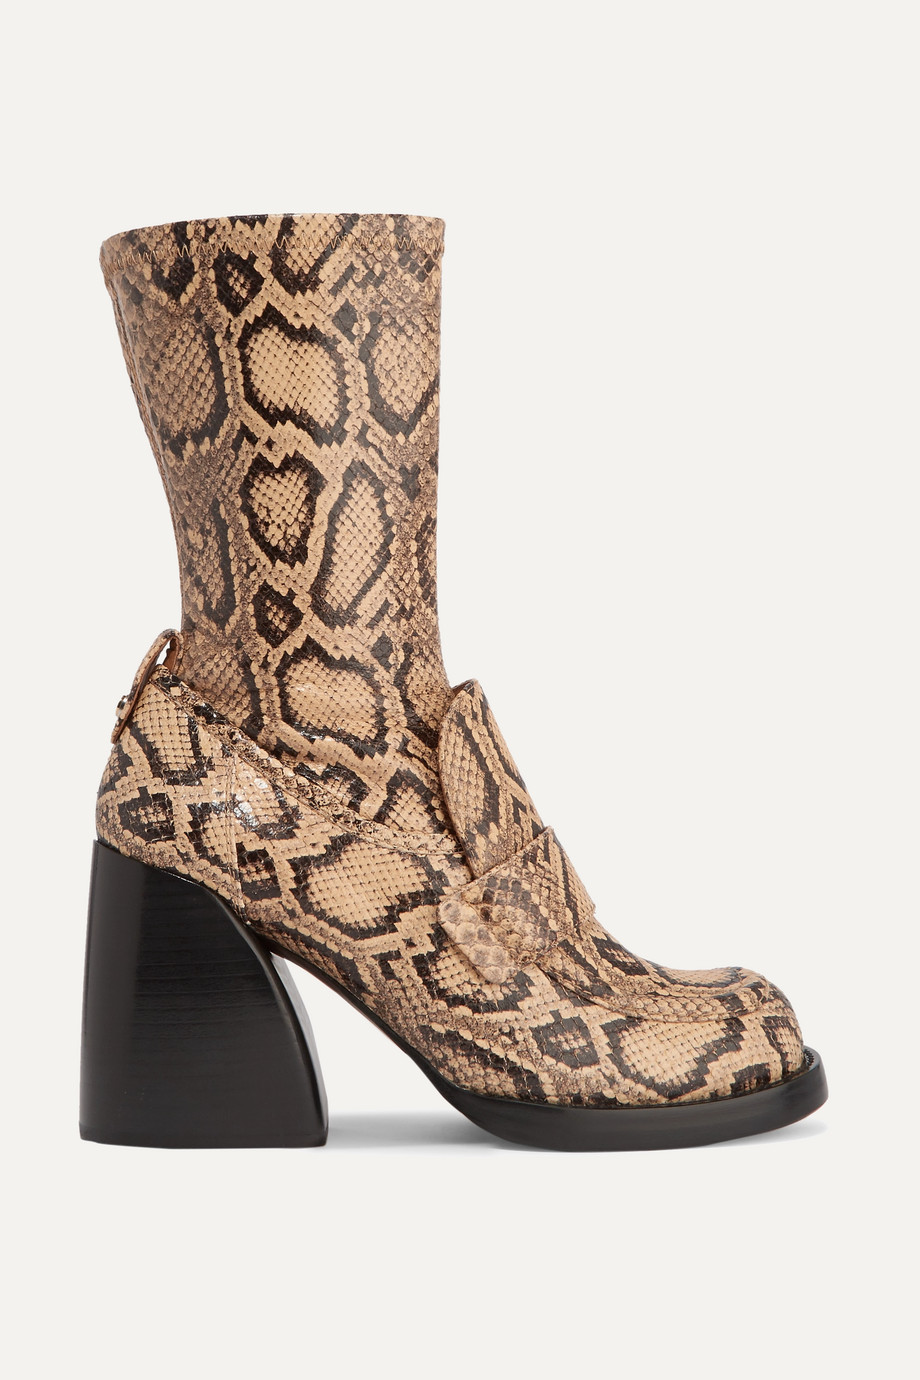 CHLOÉ Adelie python-effect leather ankle boots